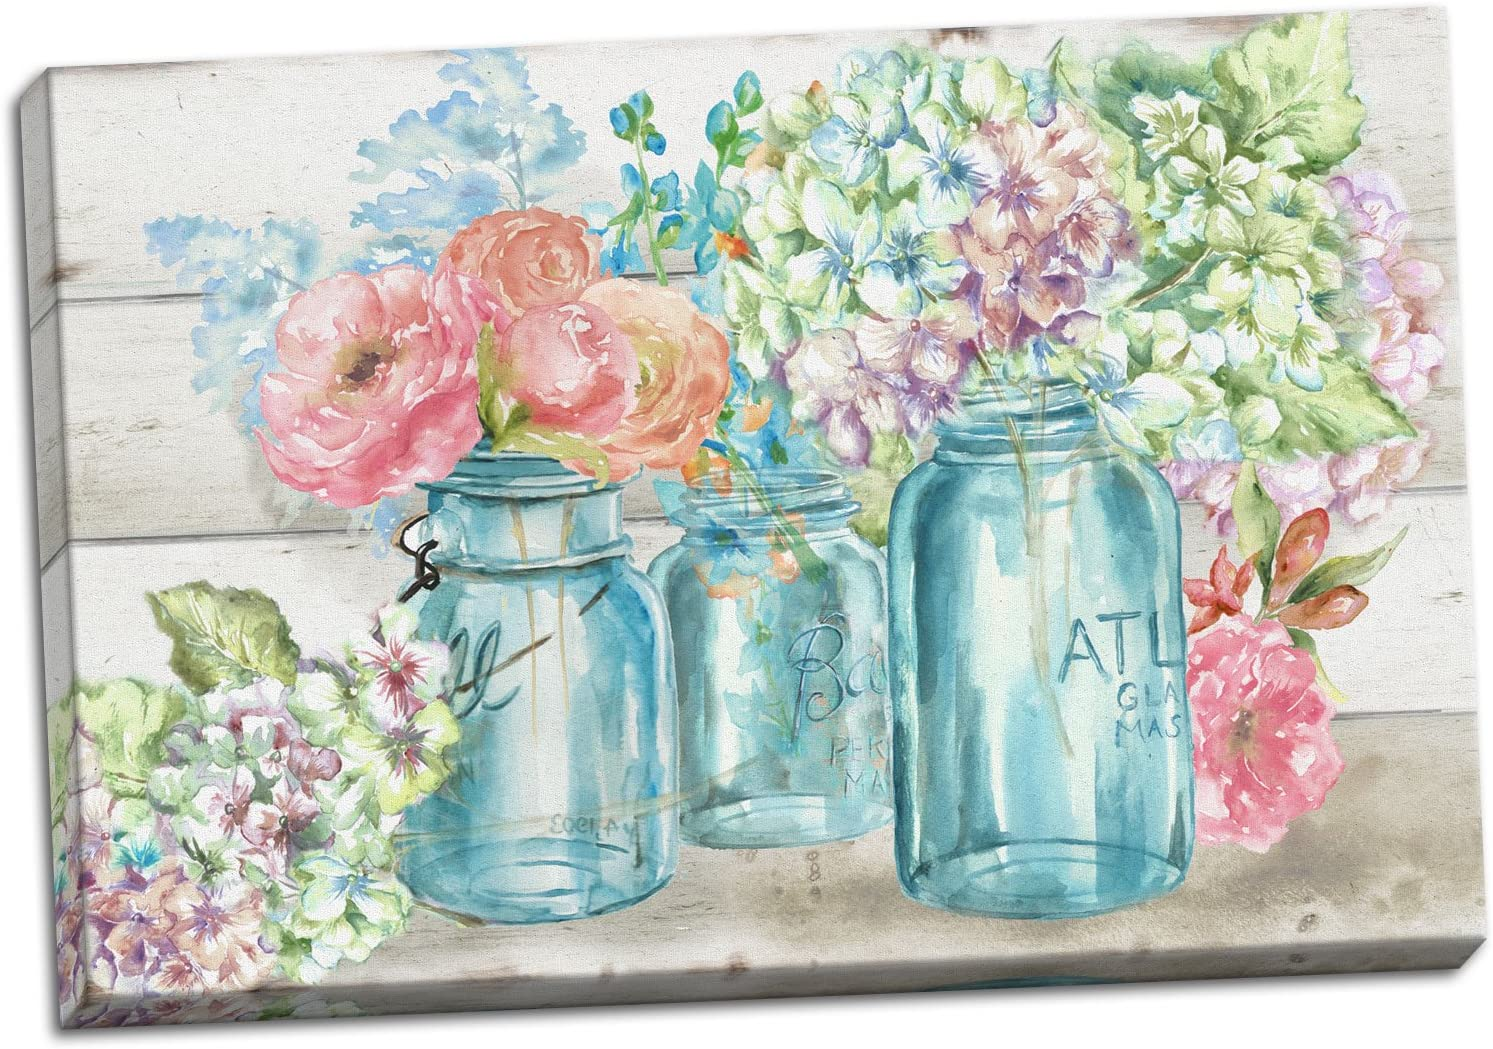 Gango Home Decor Beautiful Watercolor-Style Colorful Flowers in Mason Jar Floral Print by TRE Sorelle Studios; One 20x16in Stretched Canvas